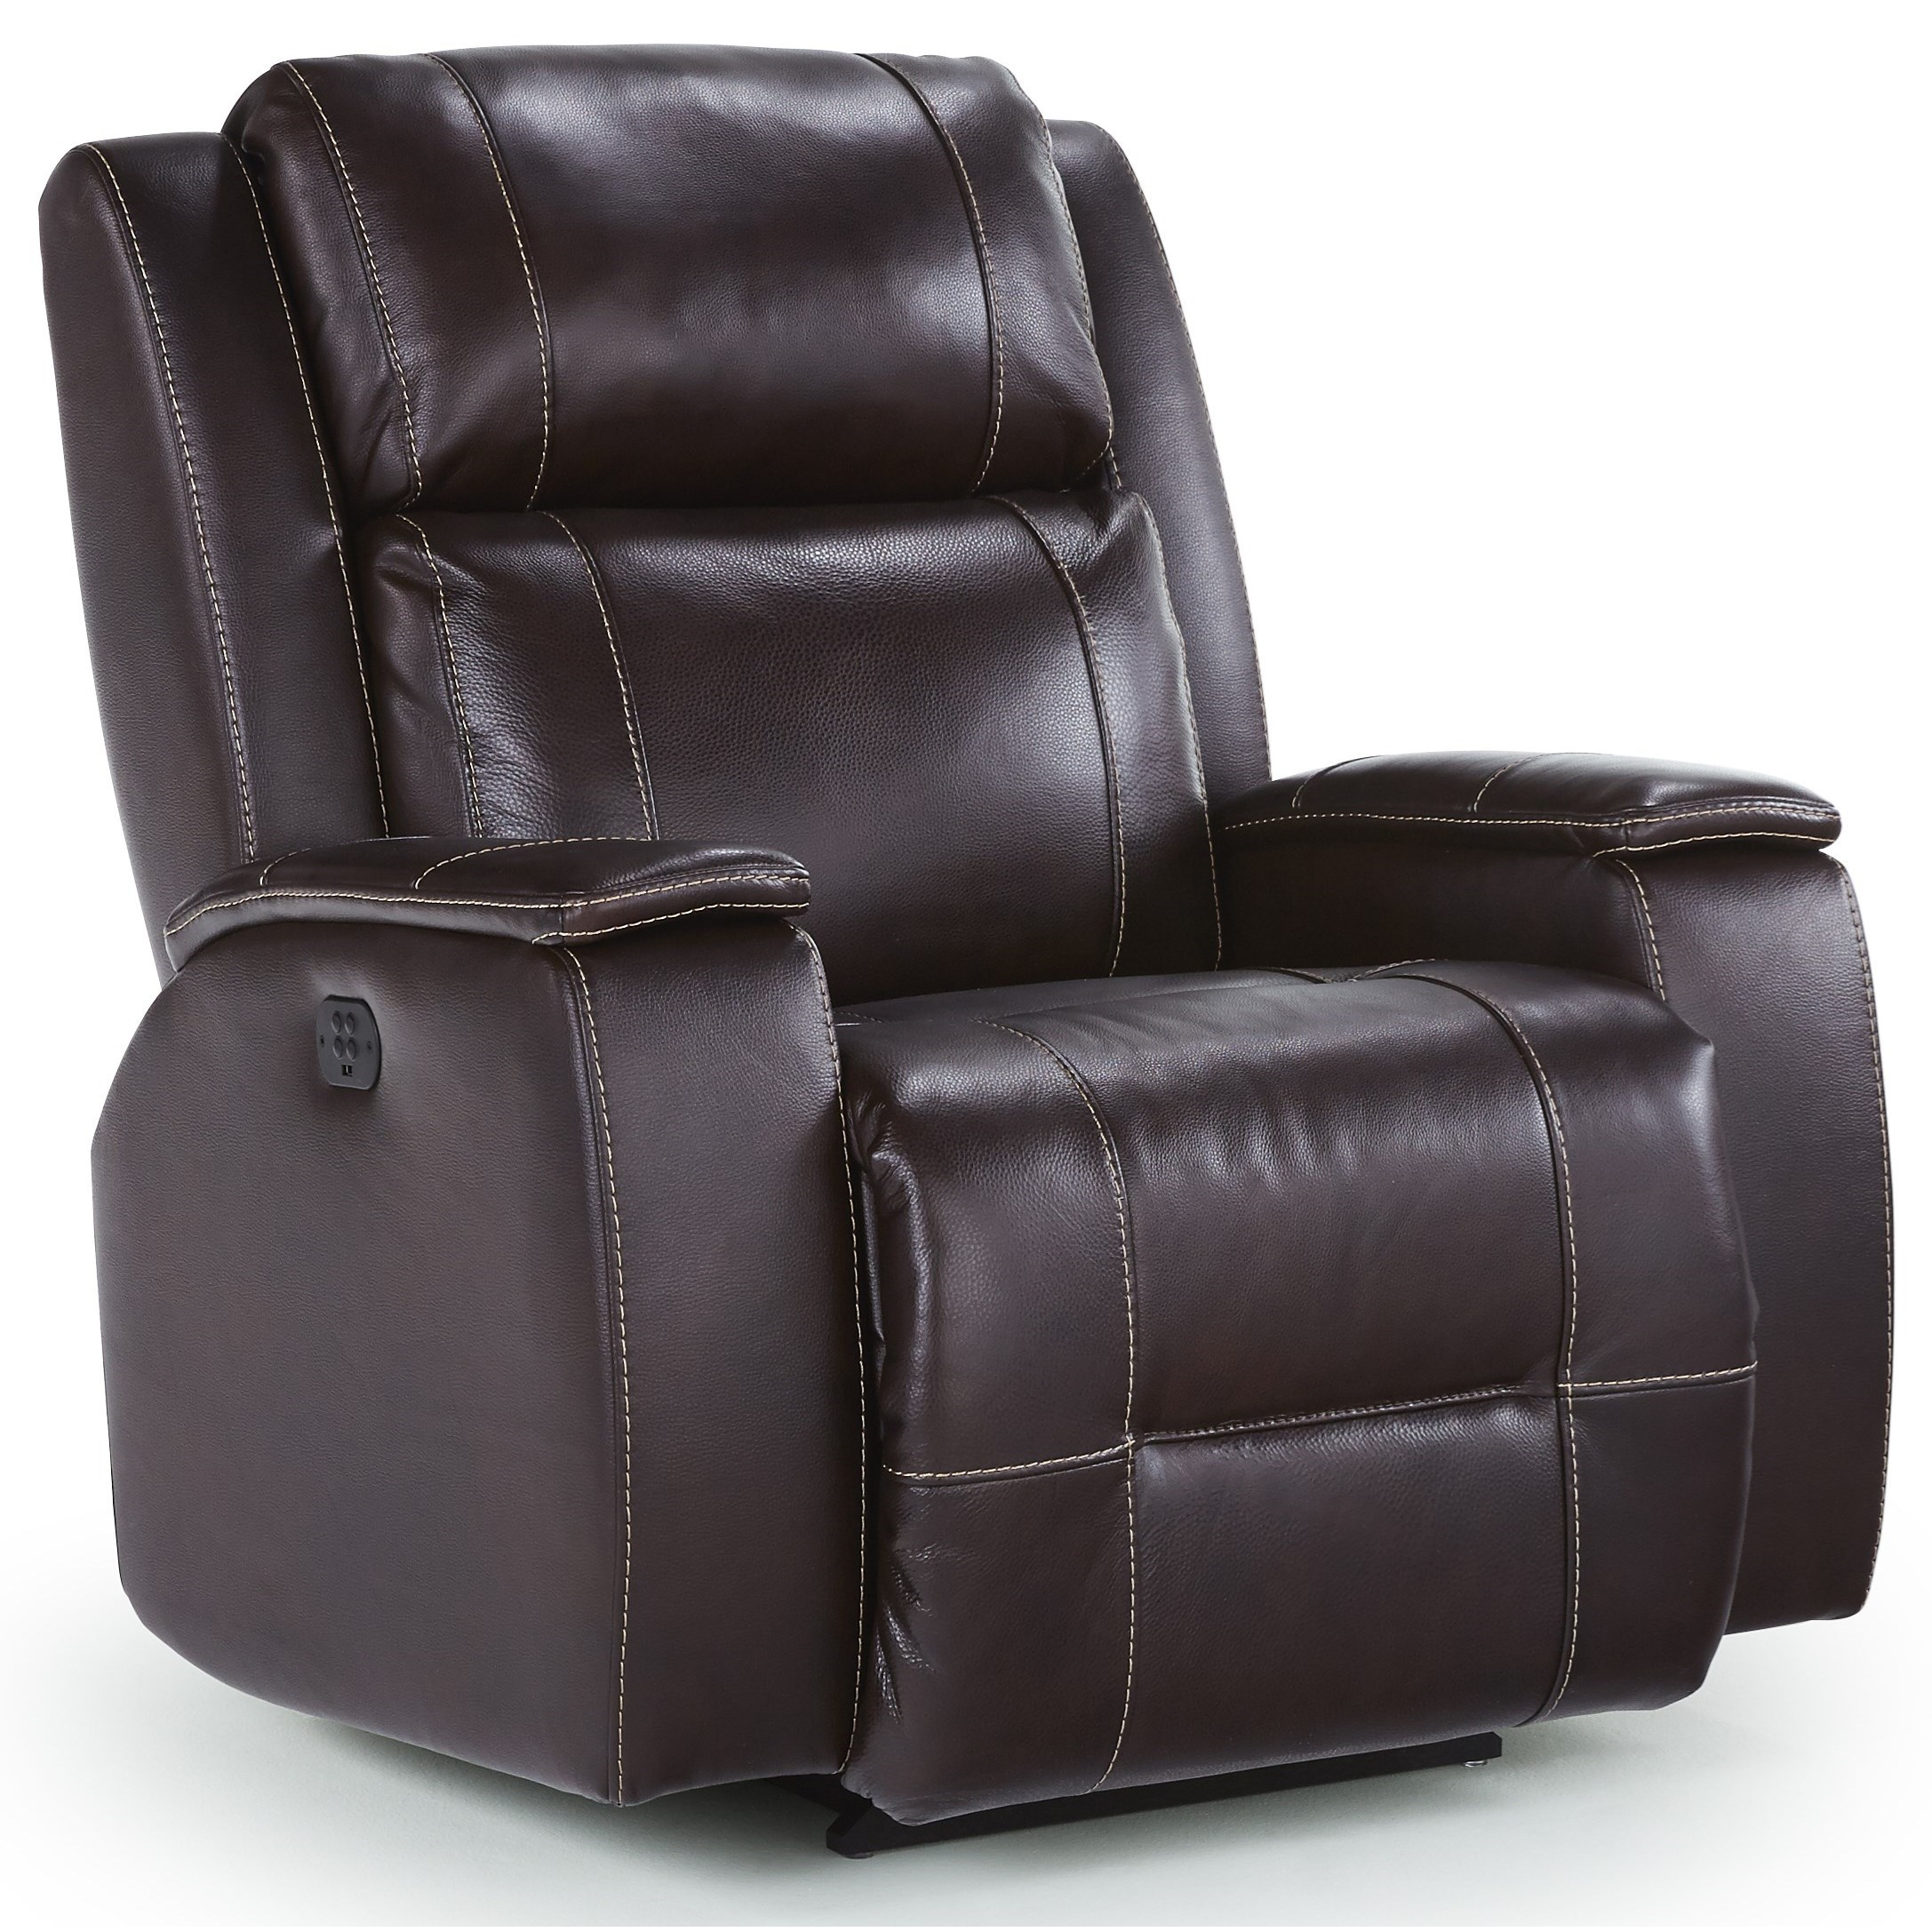 swivel recliner chairs nz tommy bahama beach chair best home furnishings medium recliners colton power lift with adjustable headrest ...